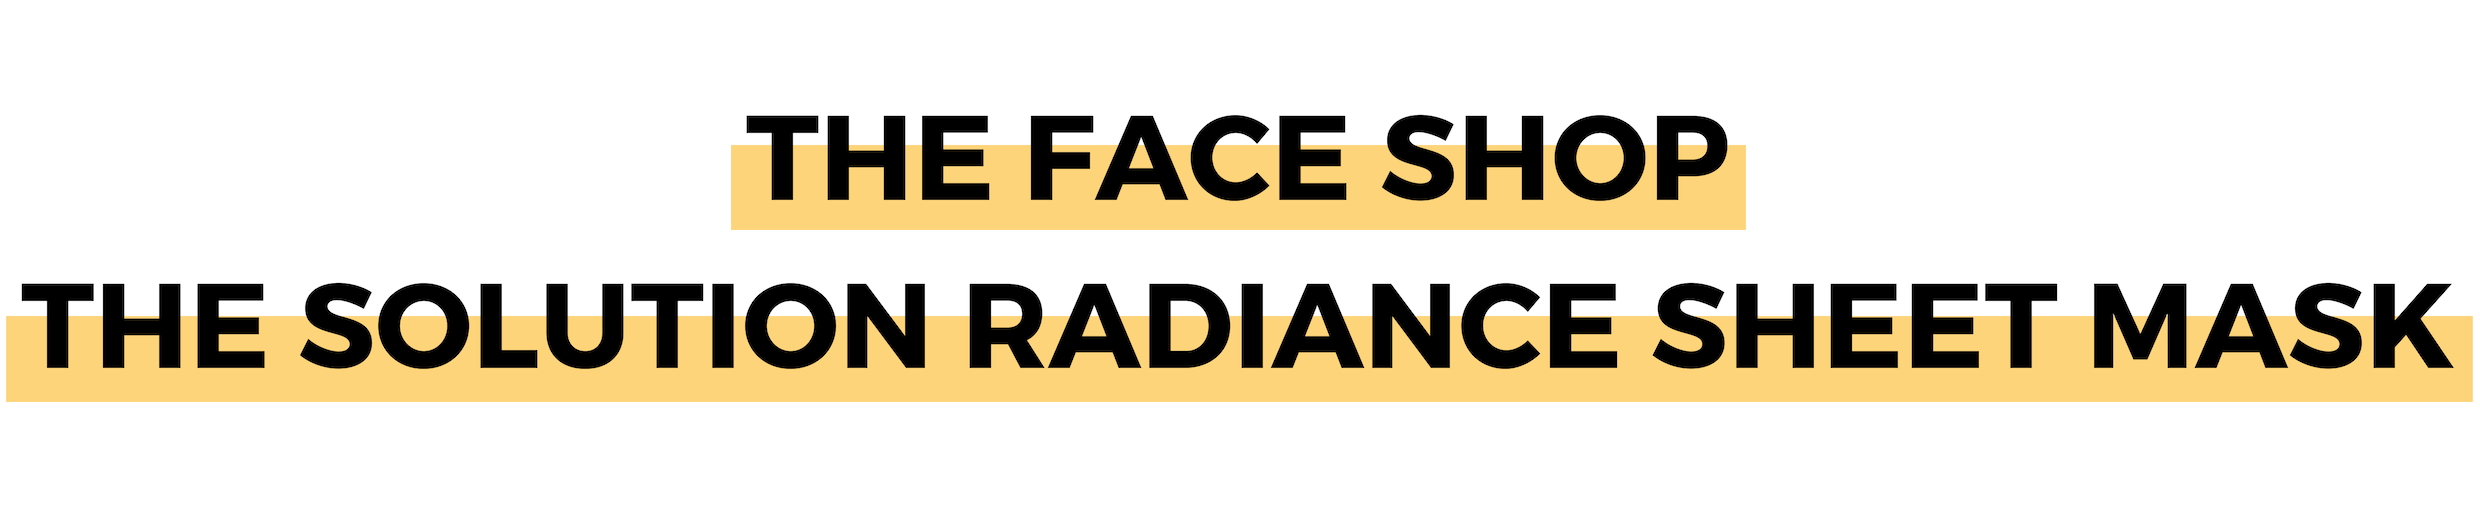 THE FACE SHOP THE SOLUTION RADIANCE SHEET MASK (1).png